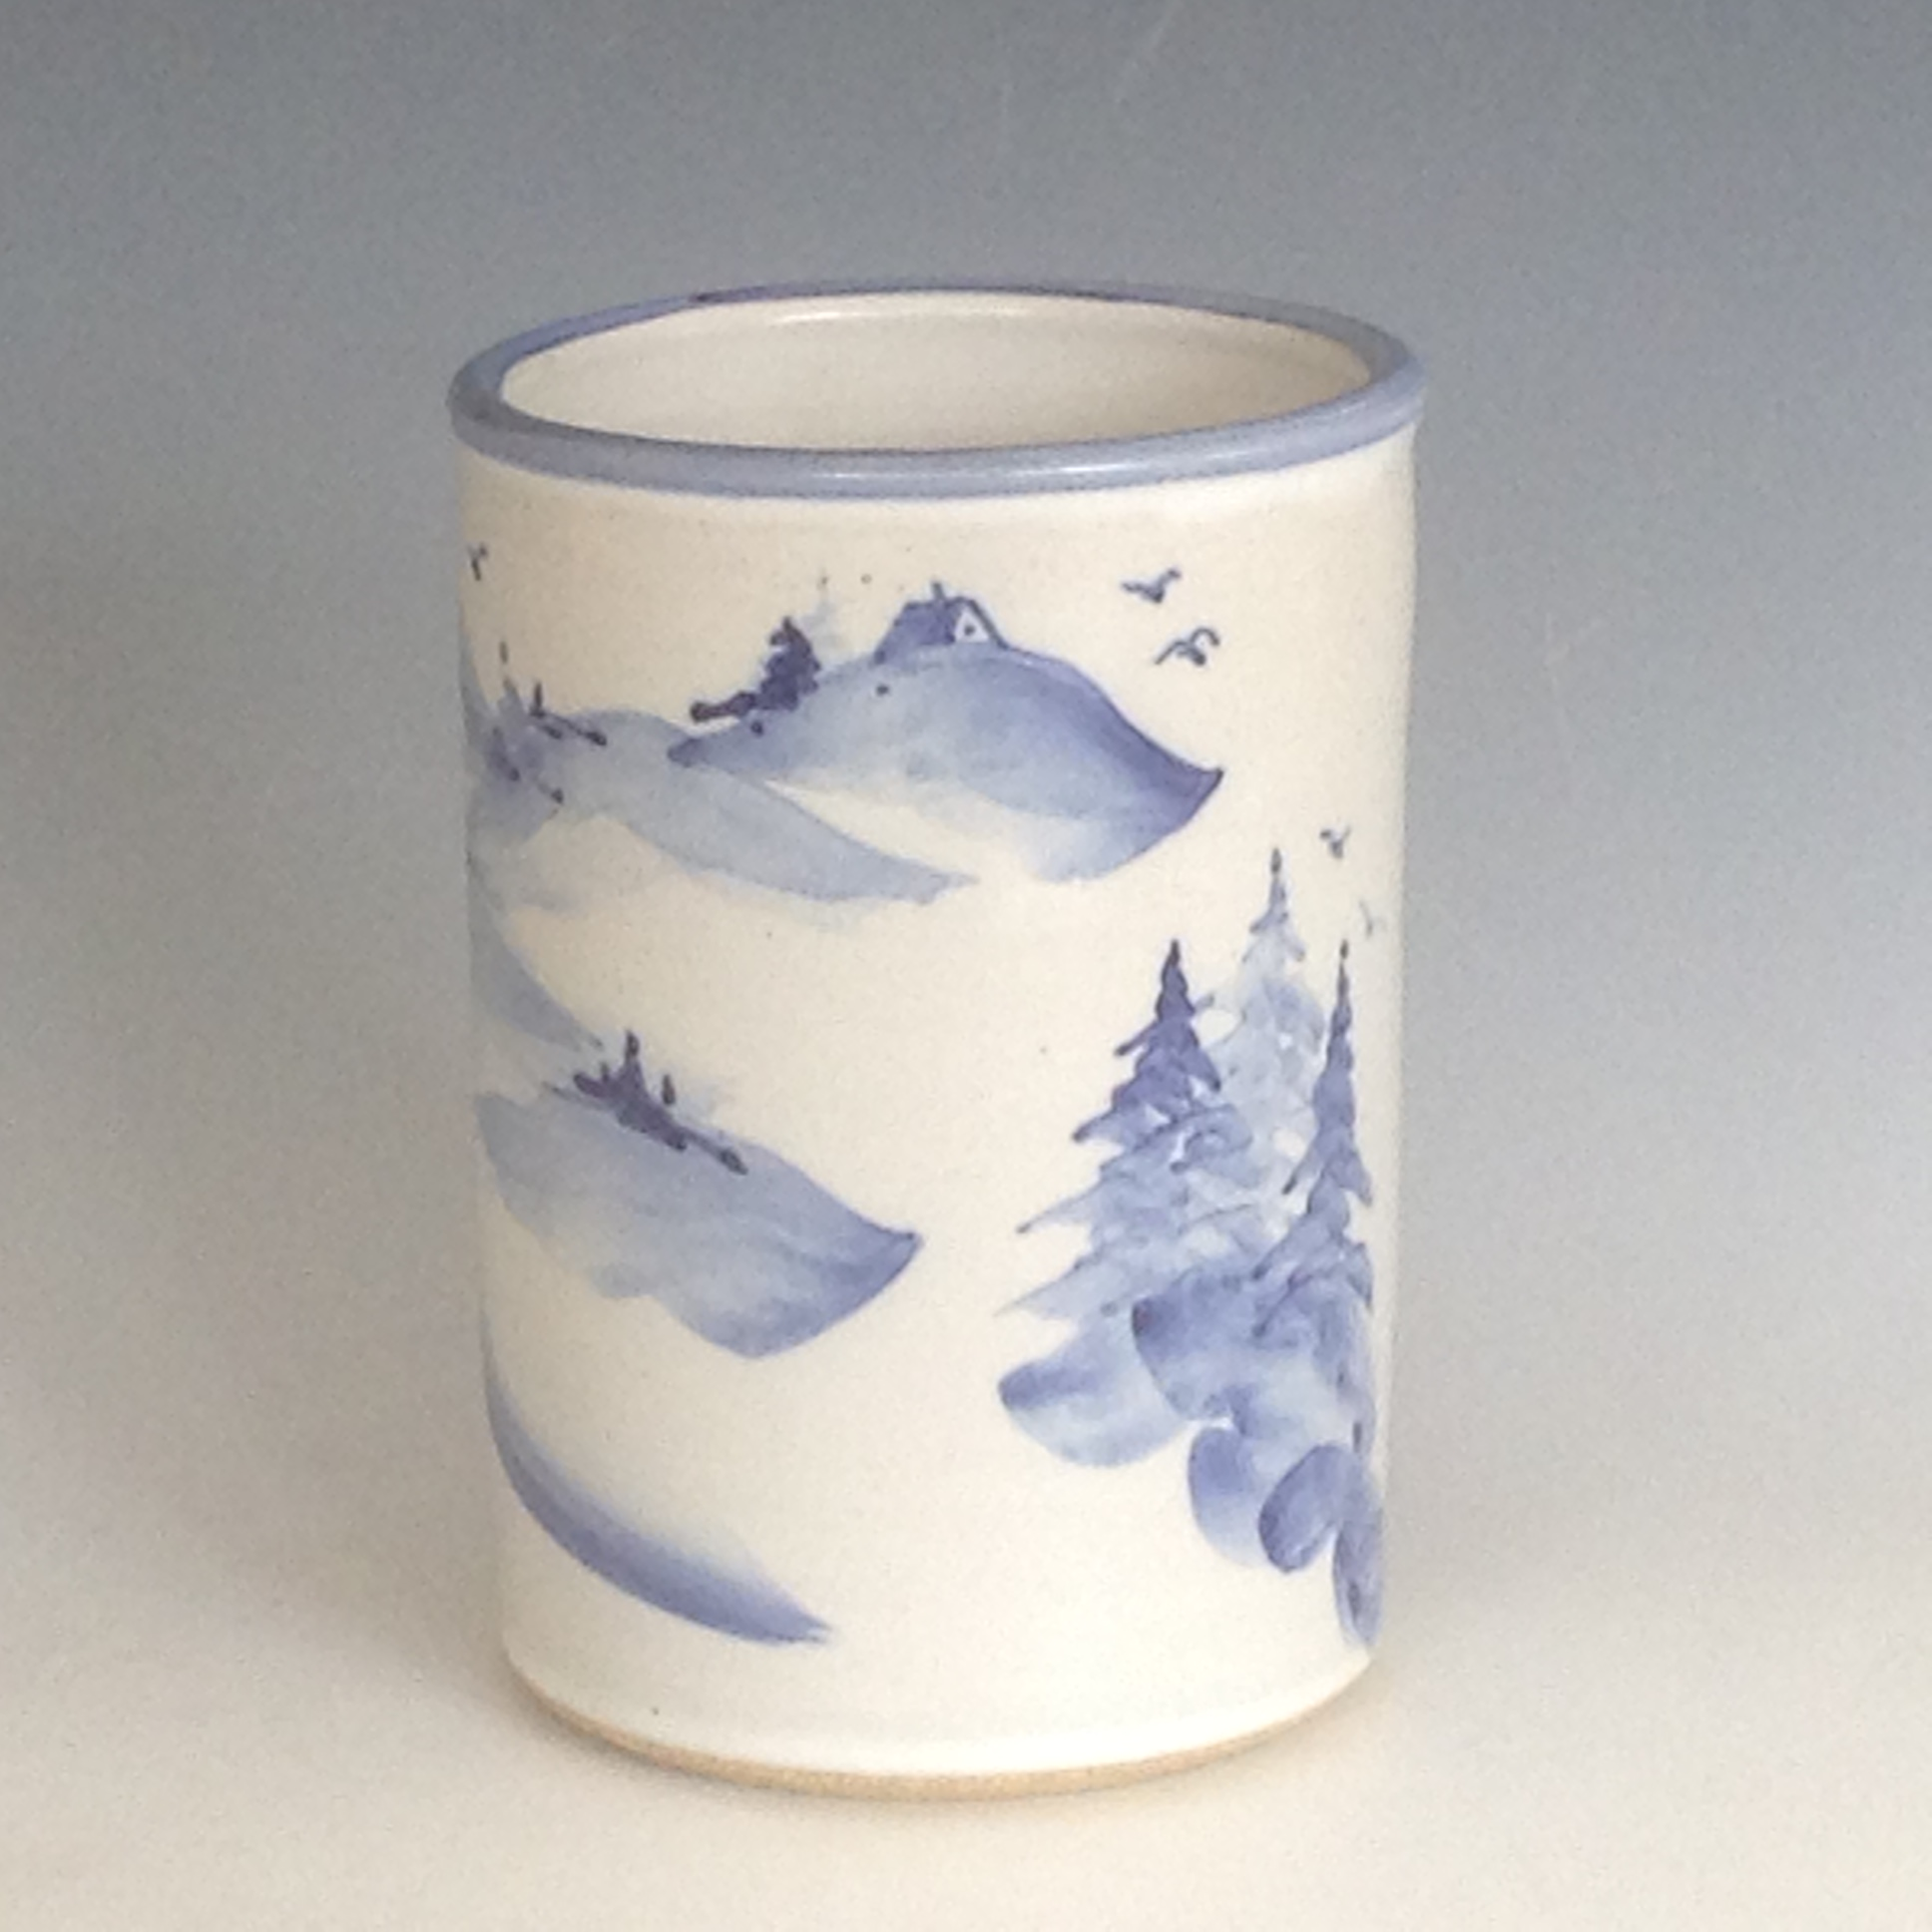 Gull Rock Pottery utensil holder